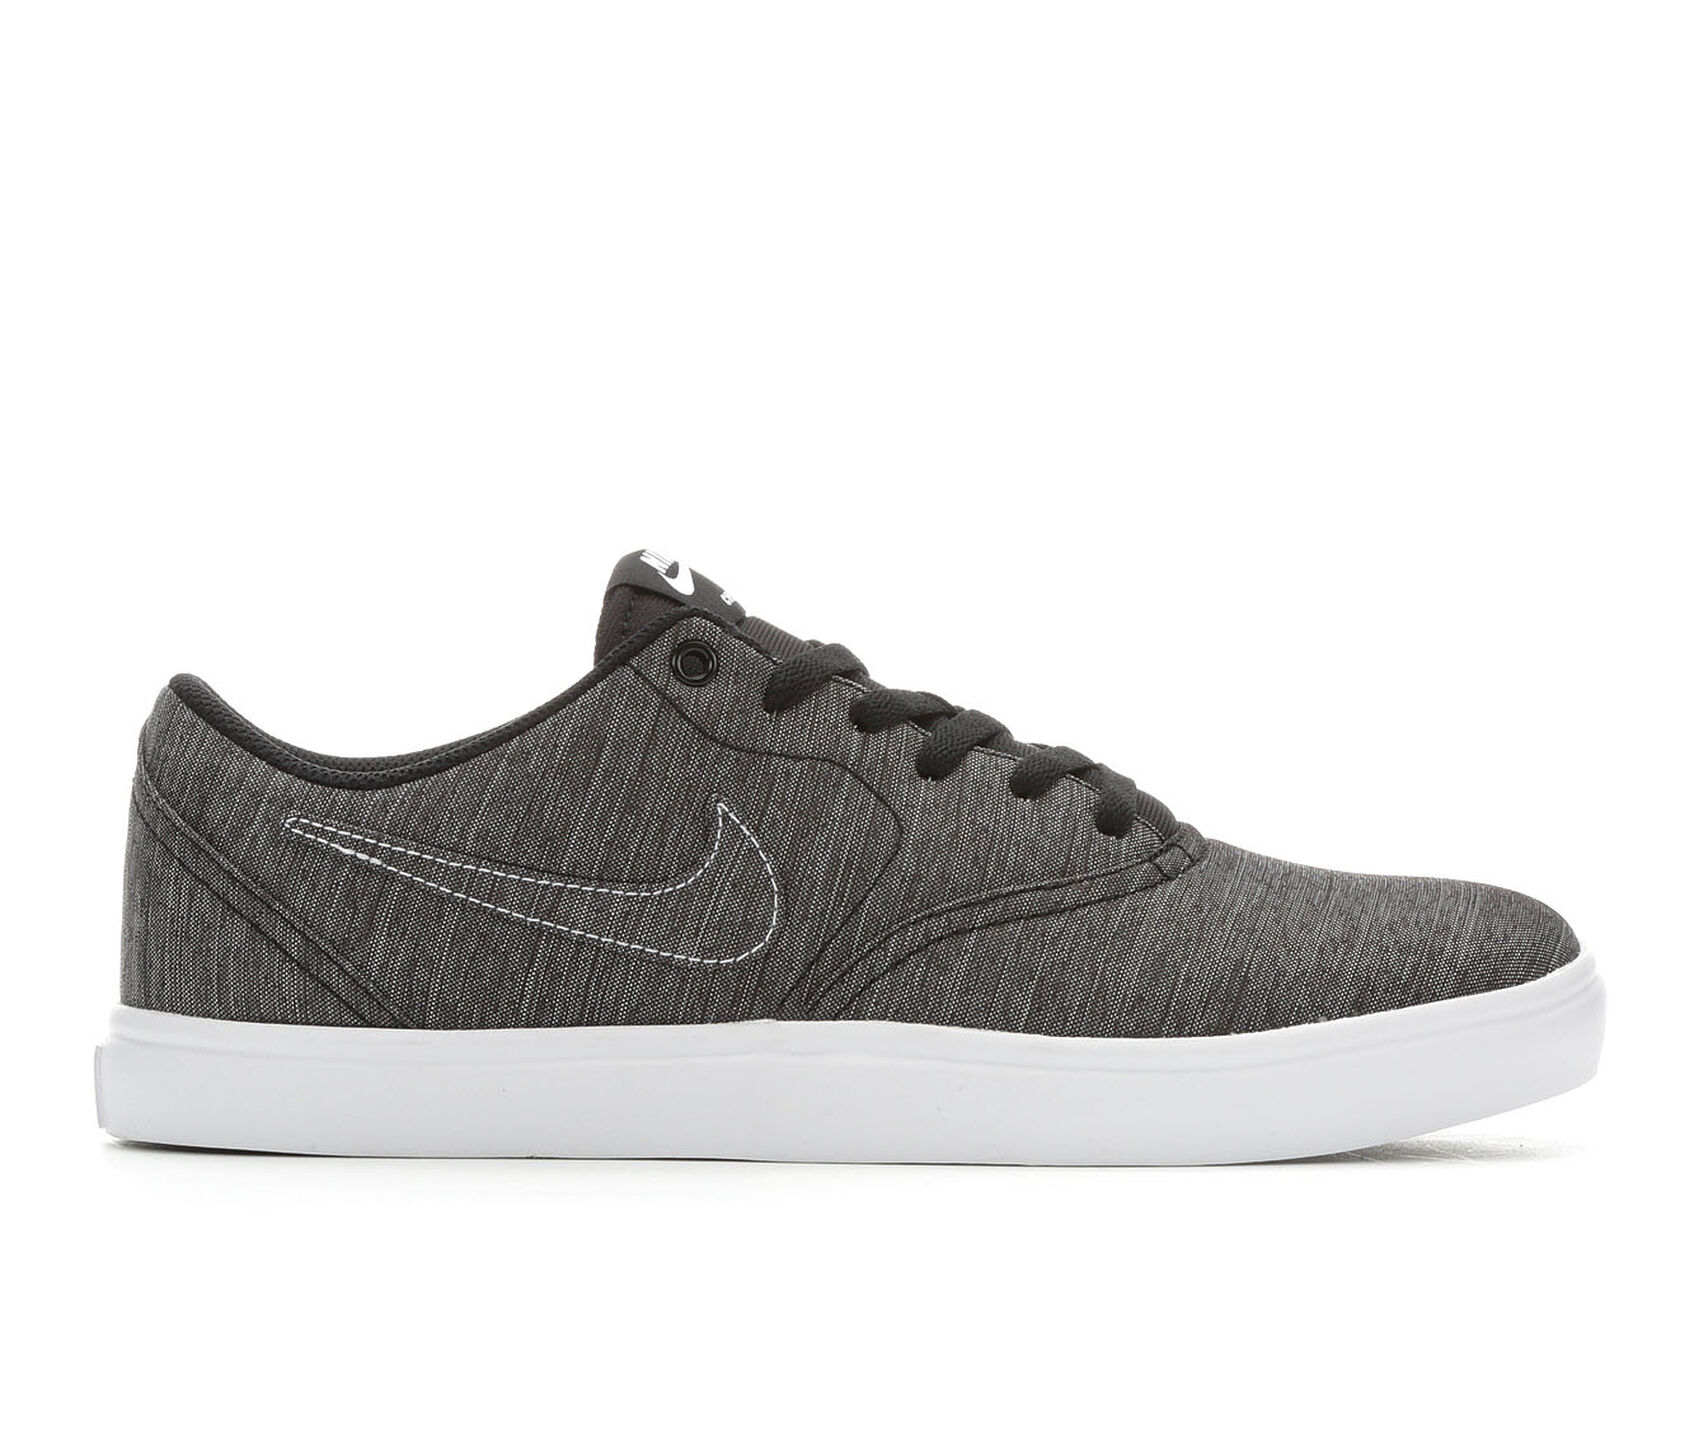 23777c35505a ... Nike SB Check Solar Premium Skate Shoes. Previous